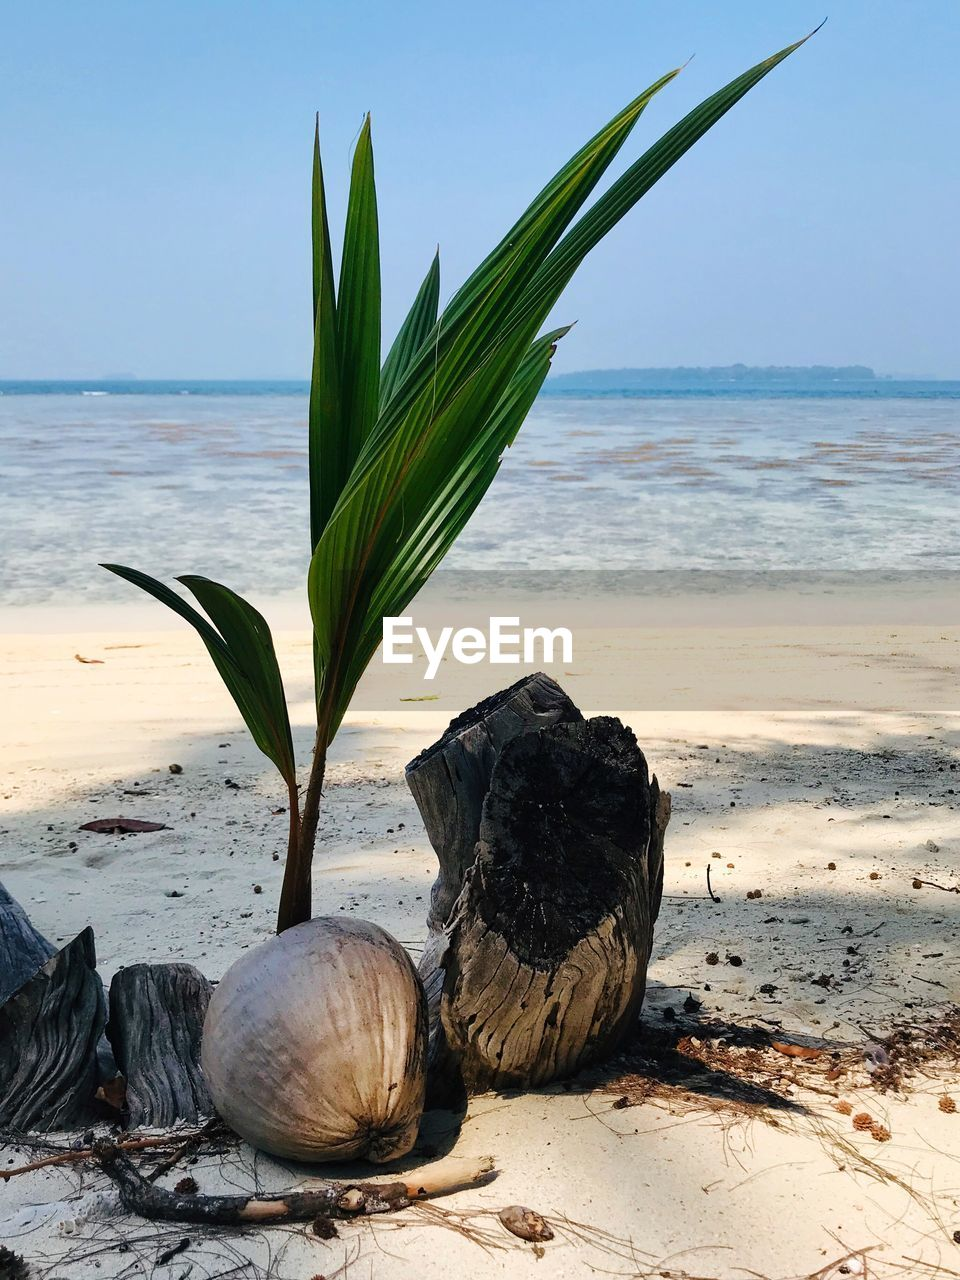 beach, sea, land, water, horizon over water, horizon, beauty in nature, nature, sand, sky, no people, scenics - nature, day, tranquility, tranquil scene, plant, shell, focus on foreground, leaf, outdoors